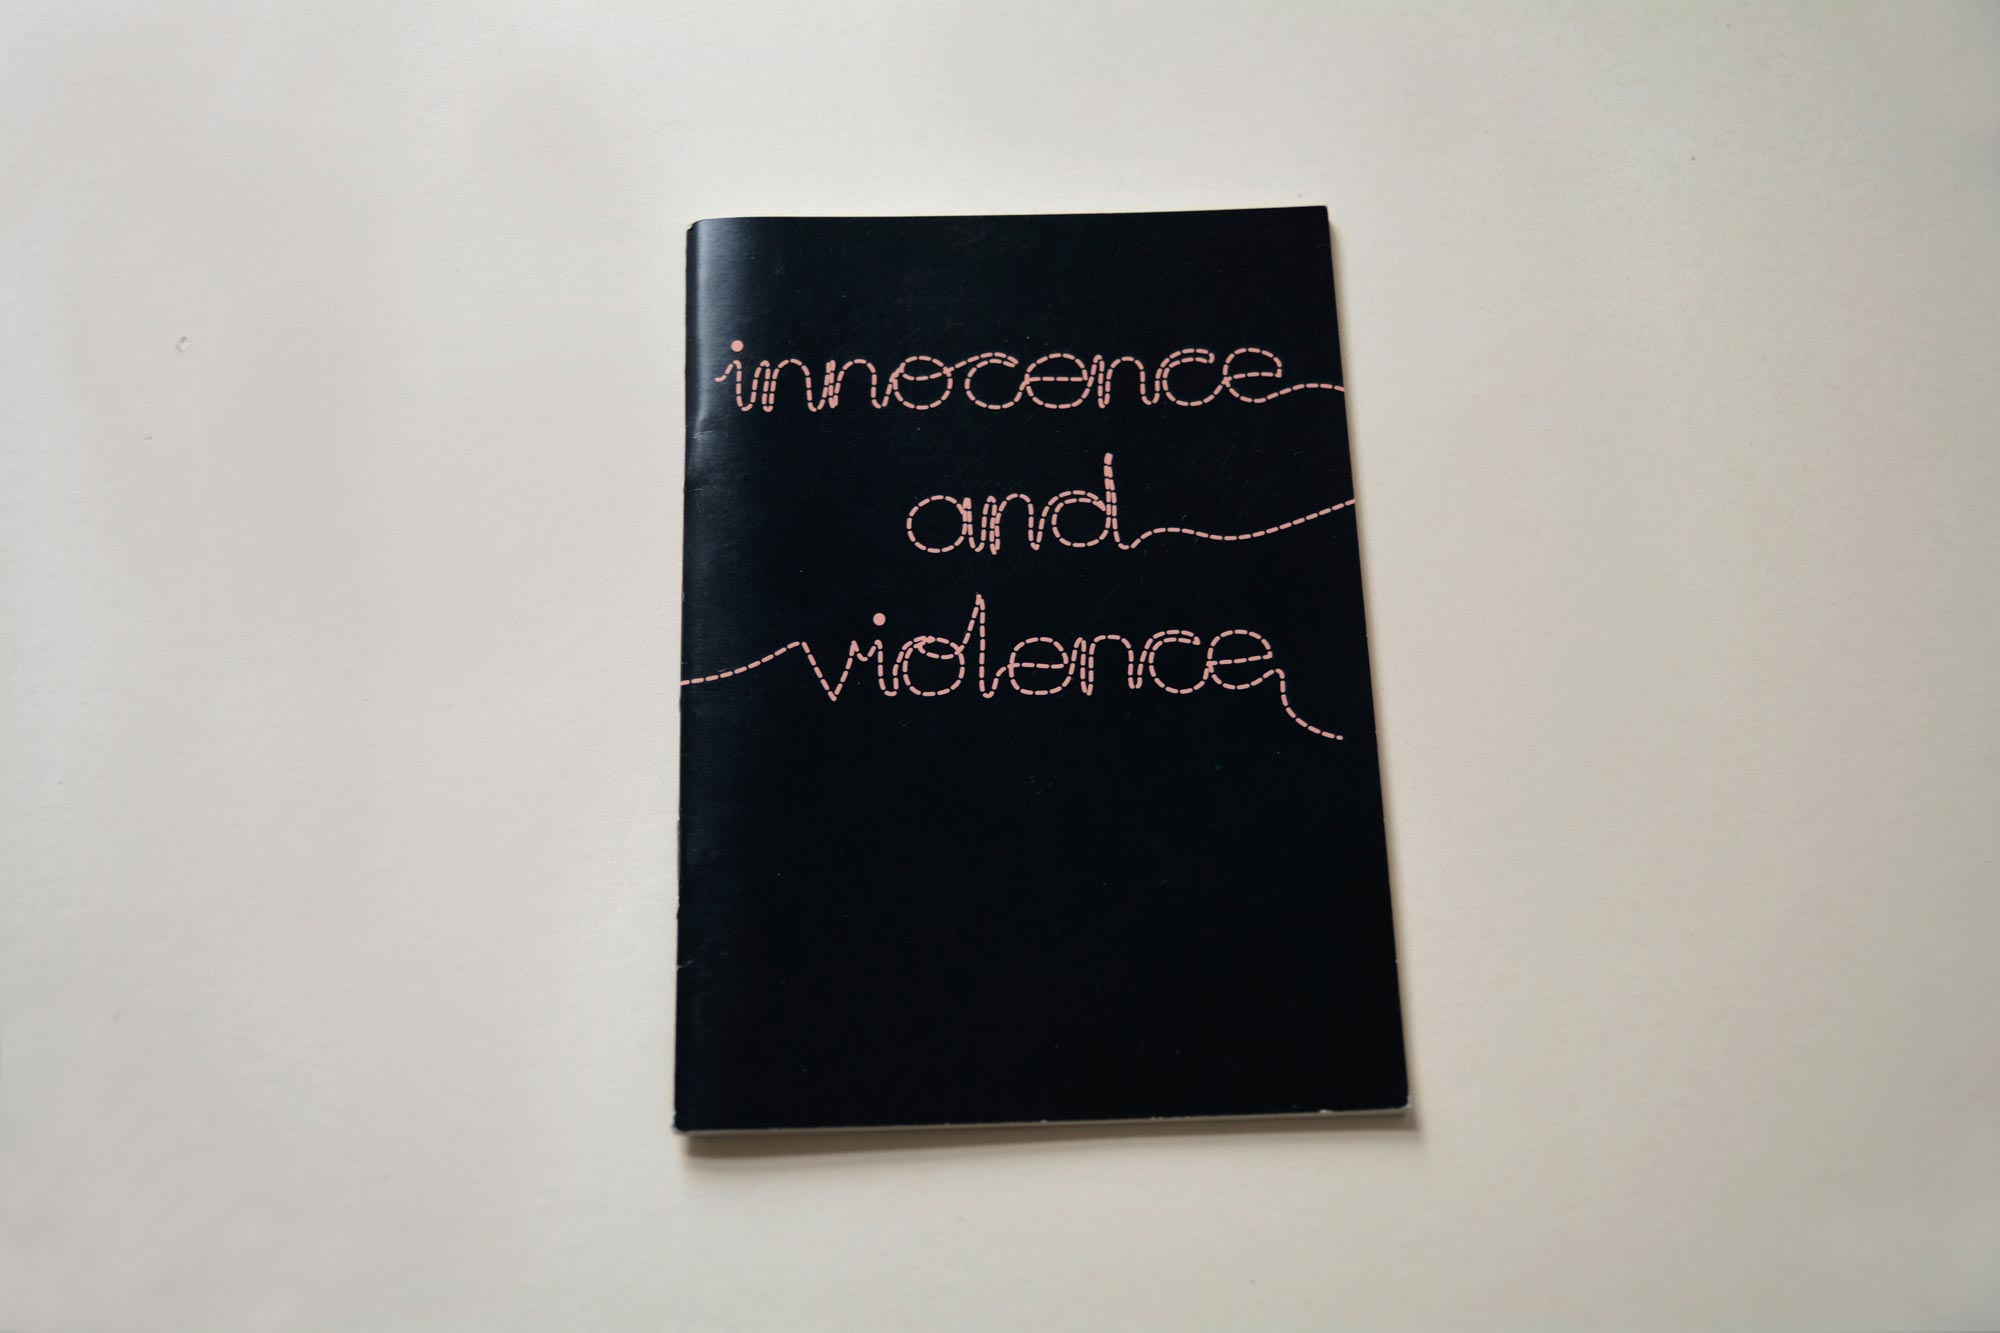 Cover cataloge. Full black background. Large Title written in a stitched-look script font.